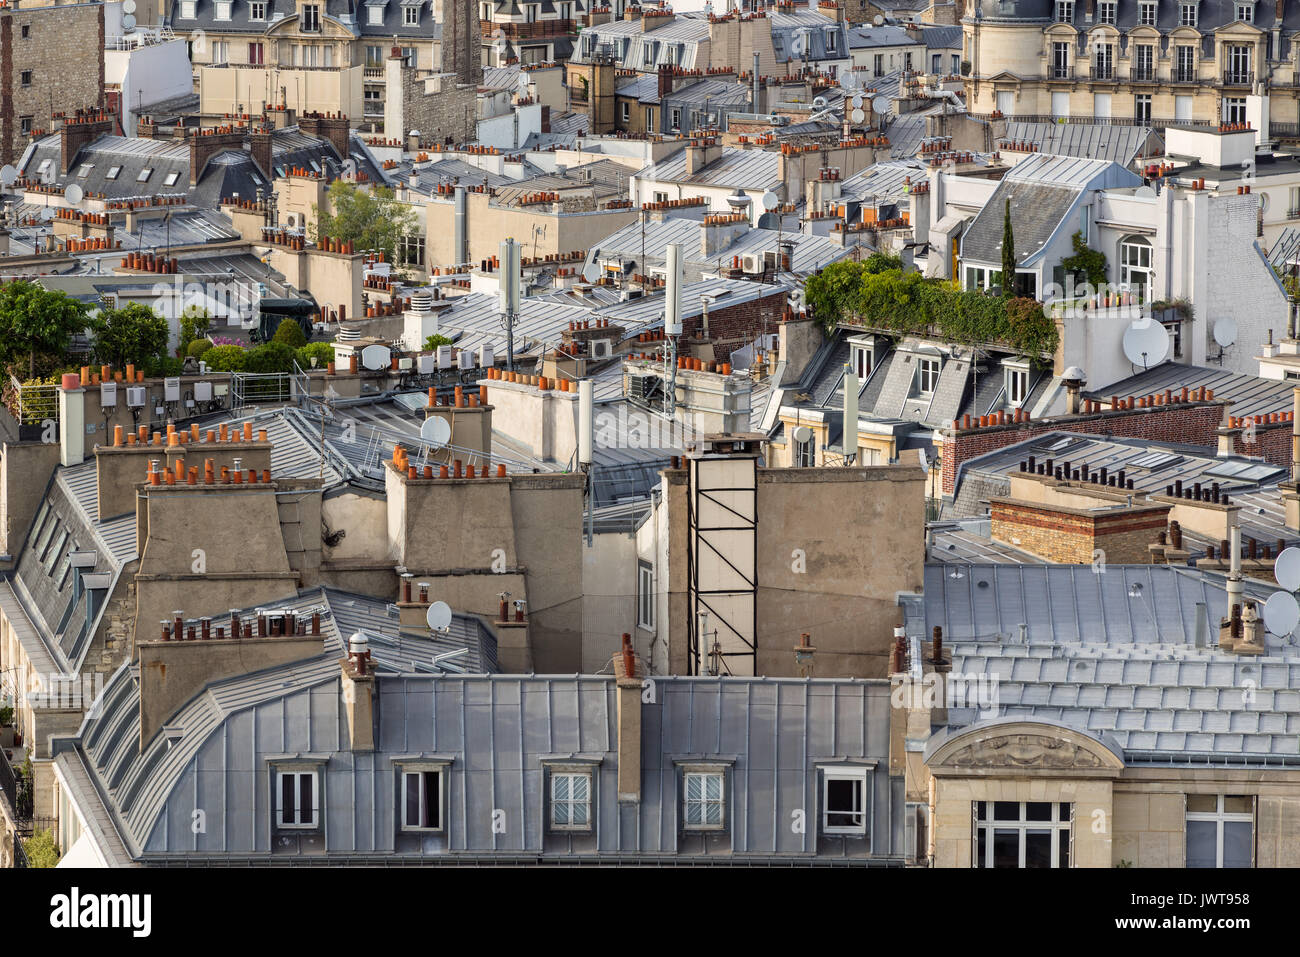 Paris rooftops in summer with roof gardens and mansard roofs. 17th Arrondissement of Paris, France - Stock Image